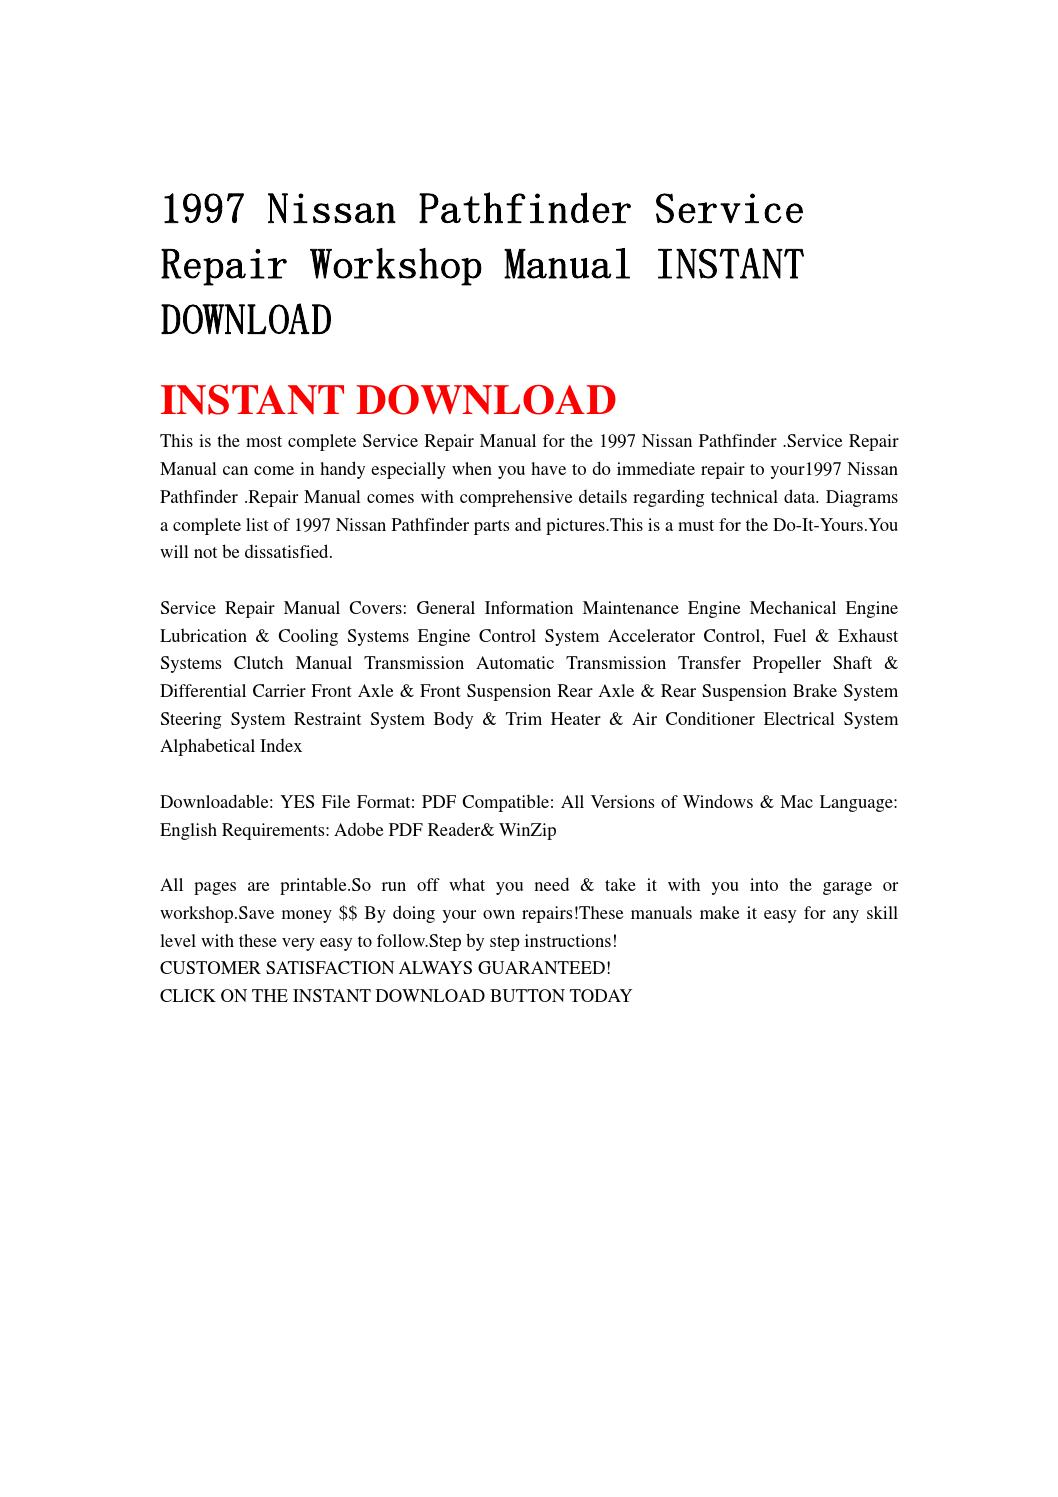 1997 nissan pathfinder service repair workshop manual instant download by  jhfgbsehn - issuu